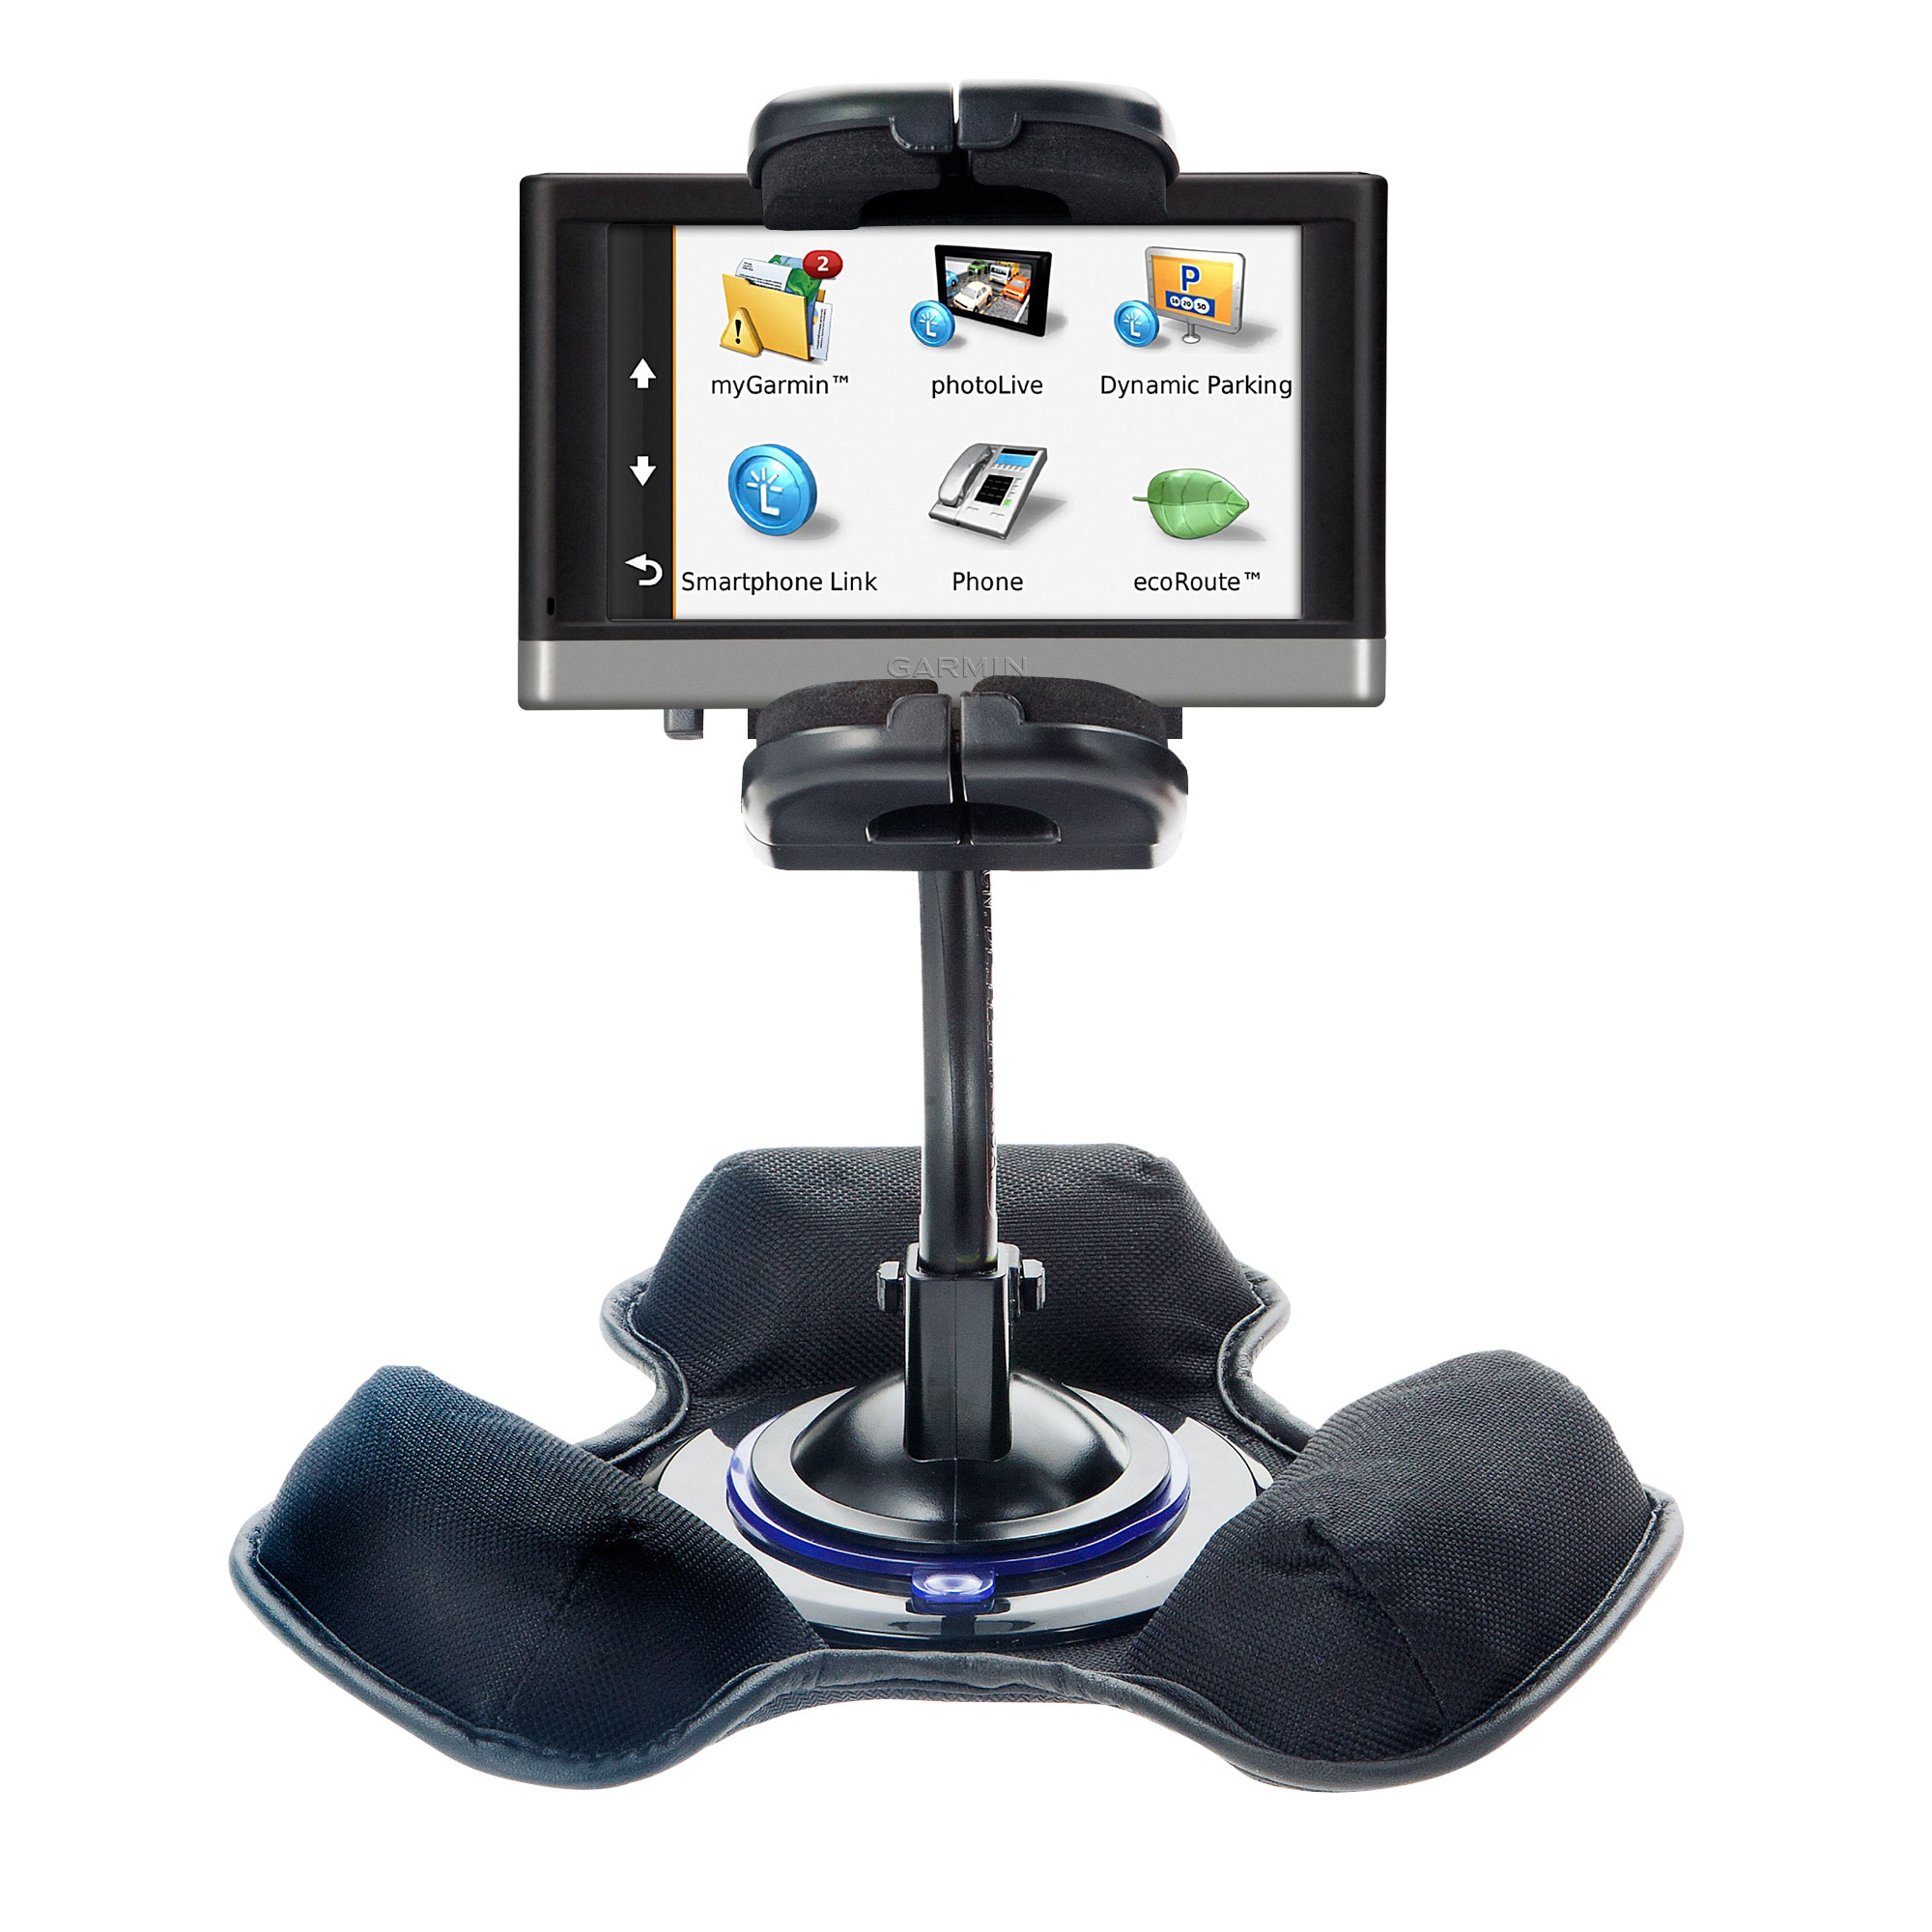 Dash and Windshield Holder compatible with the Garmin nuvi 2457 / 2497 LMT